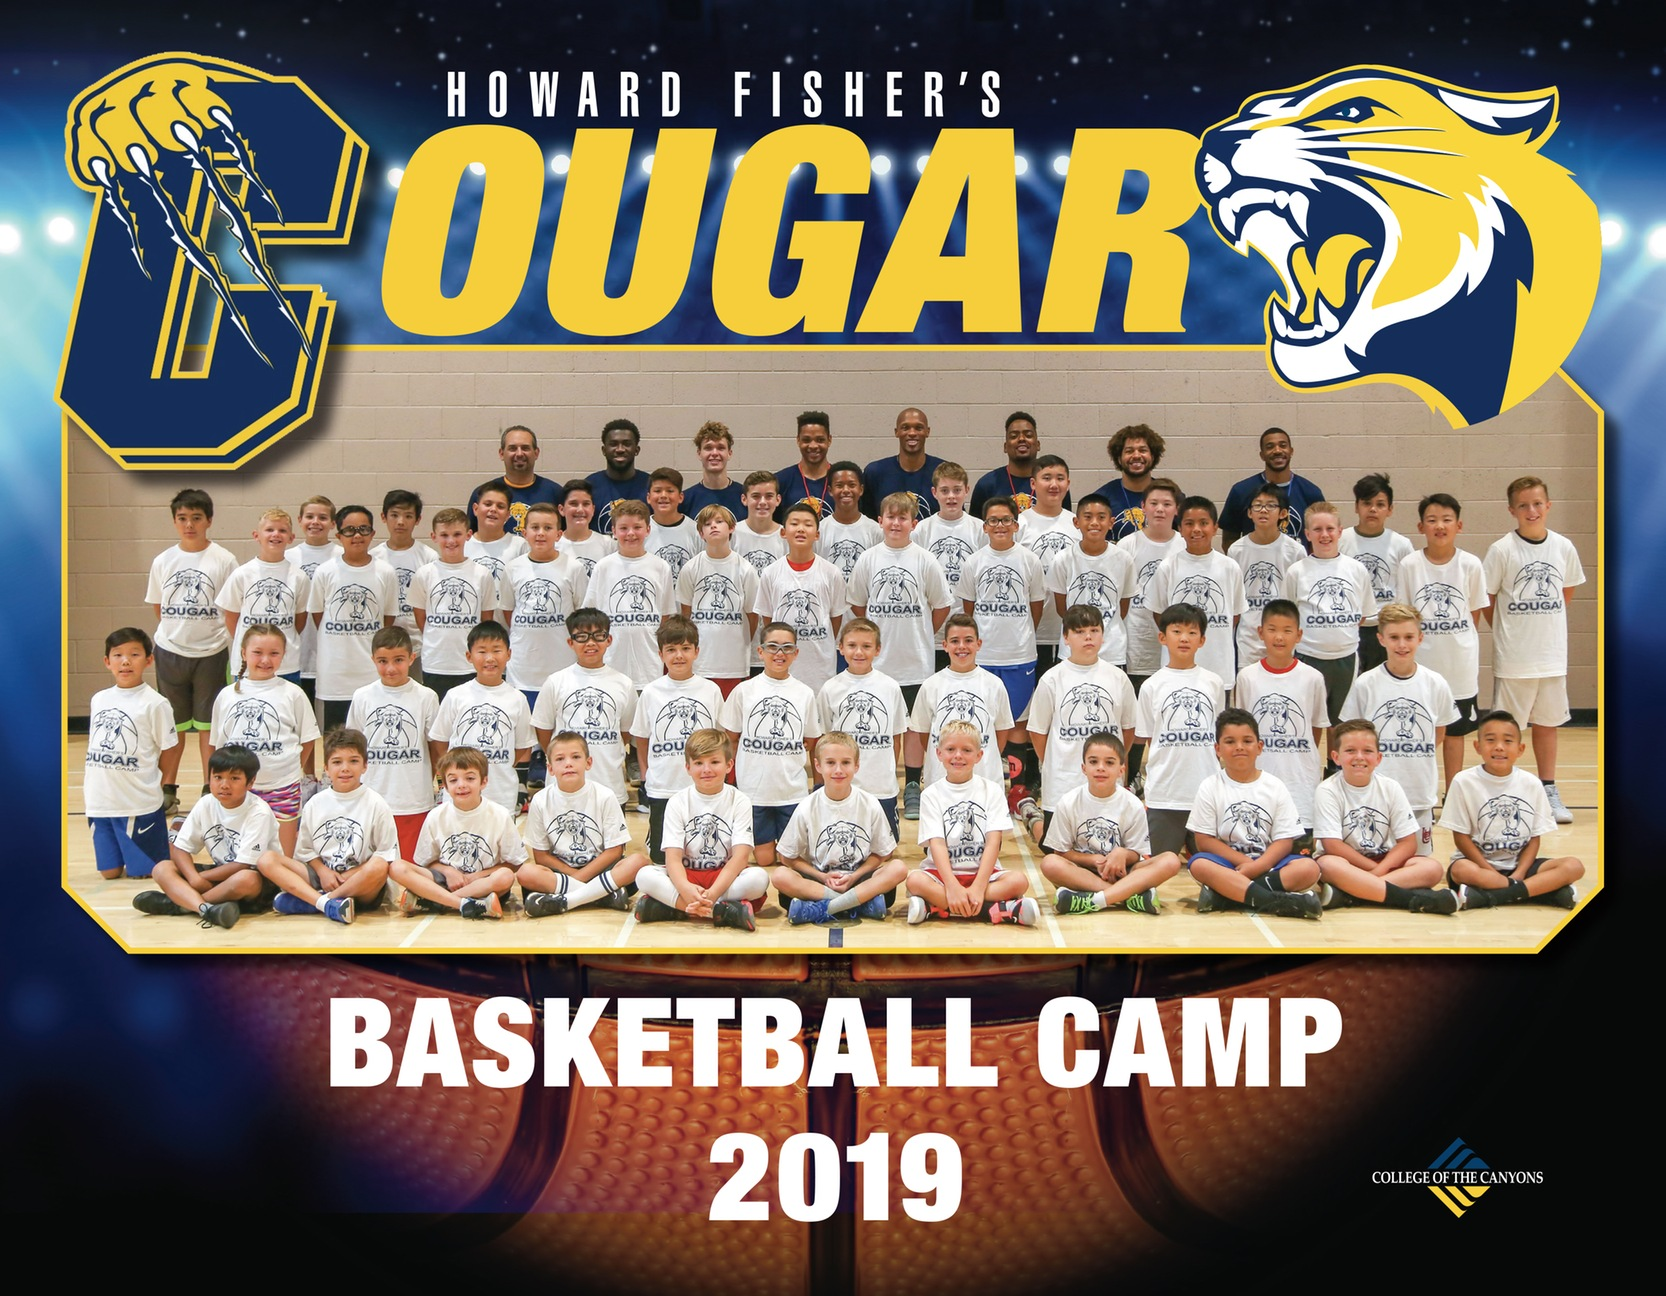 2019 Cougar Basketball Summer Camp group photo.